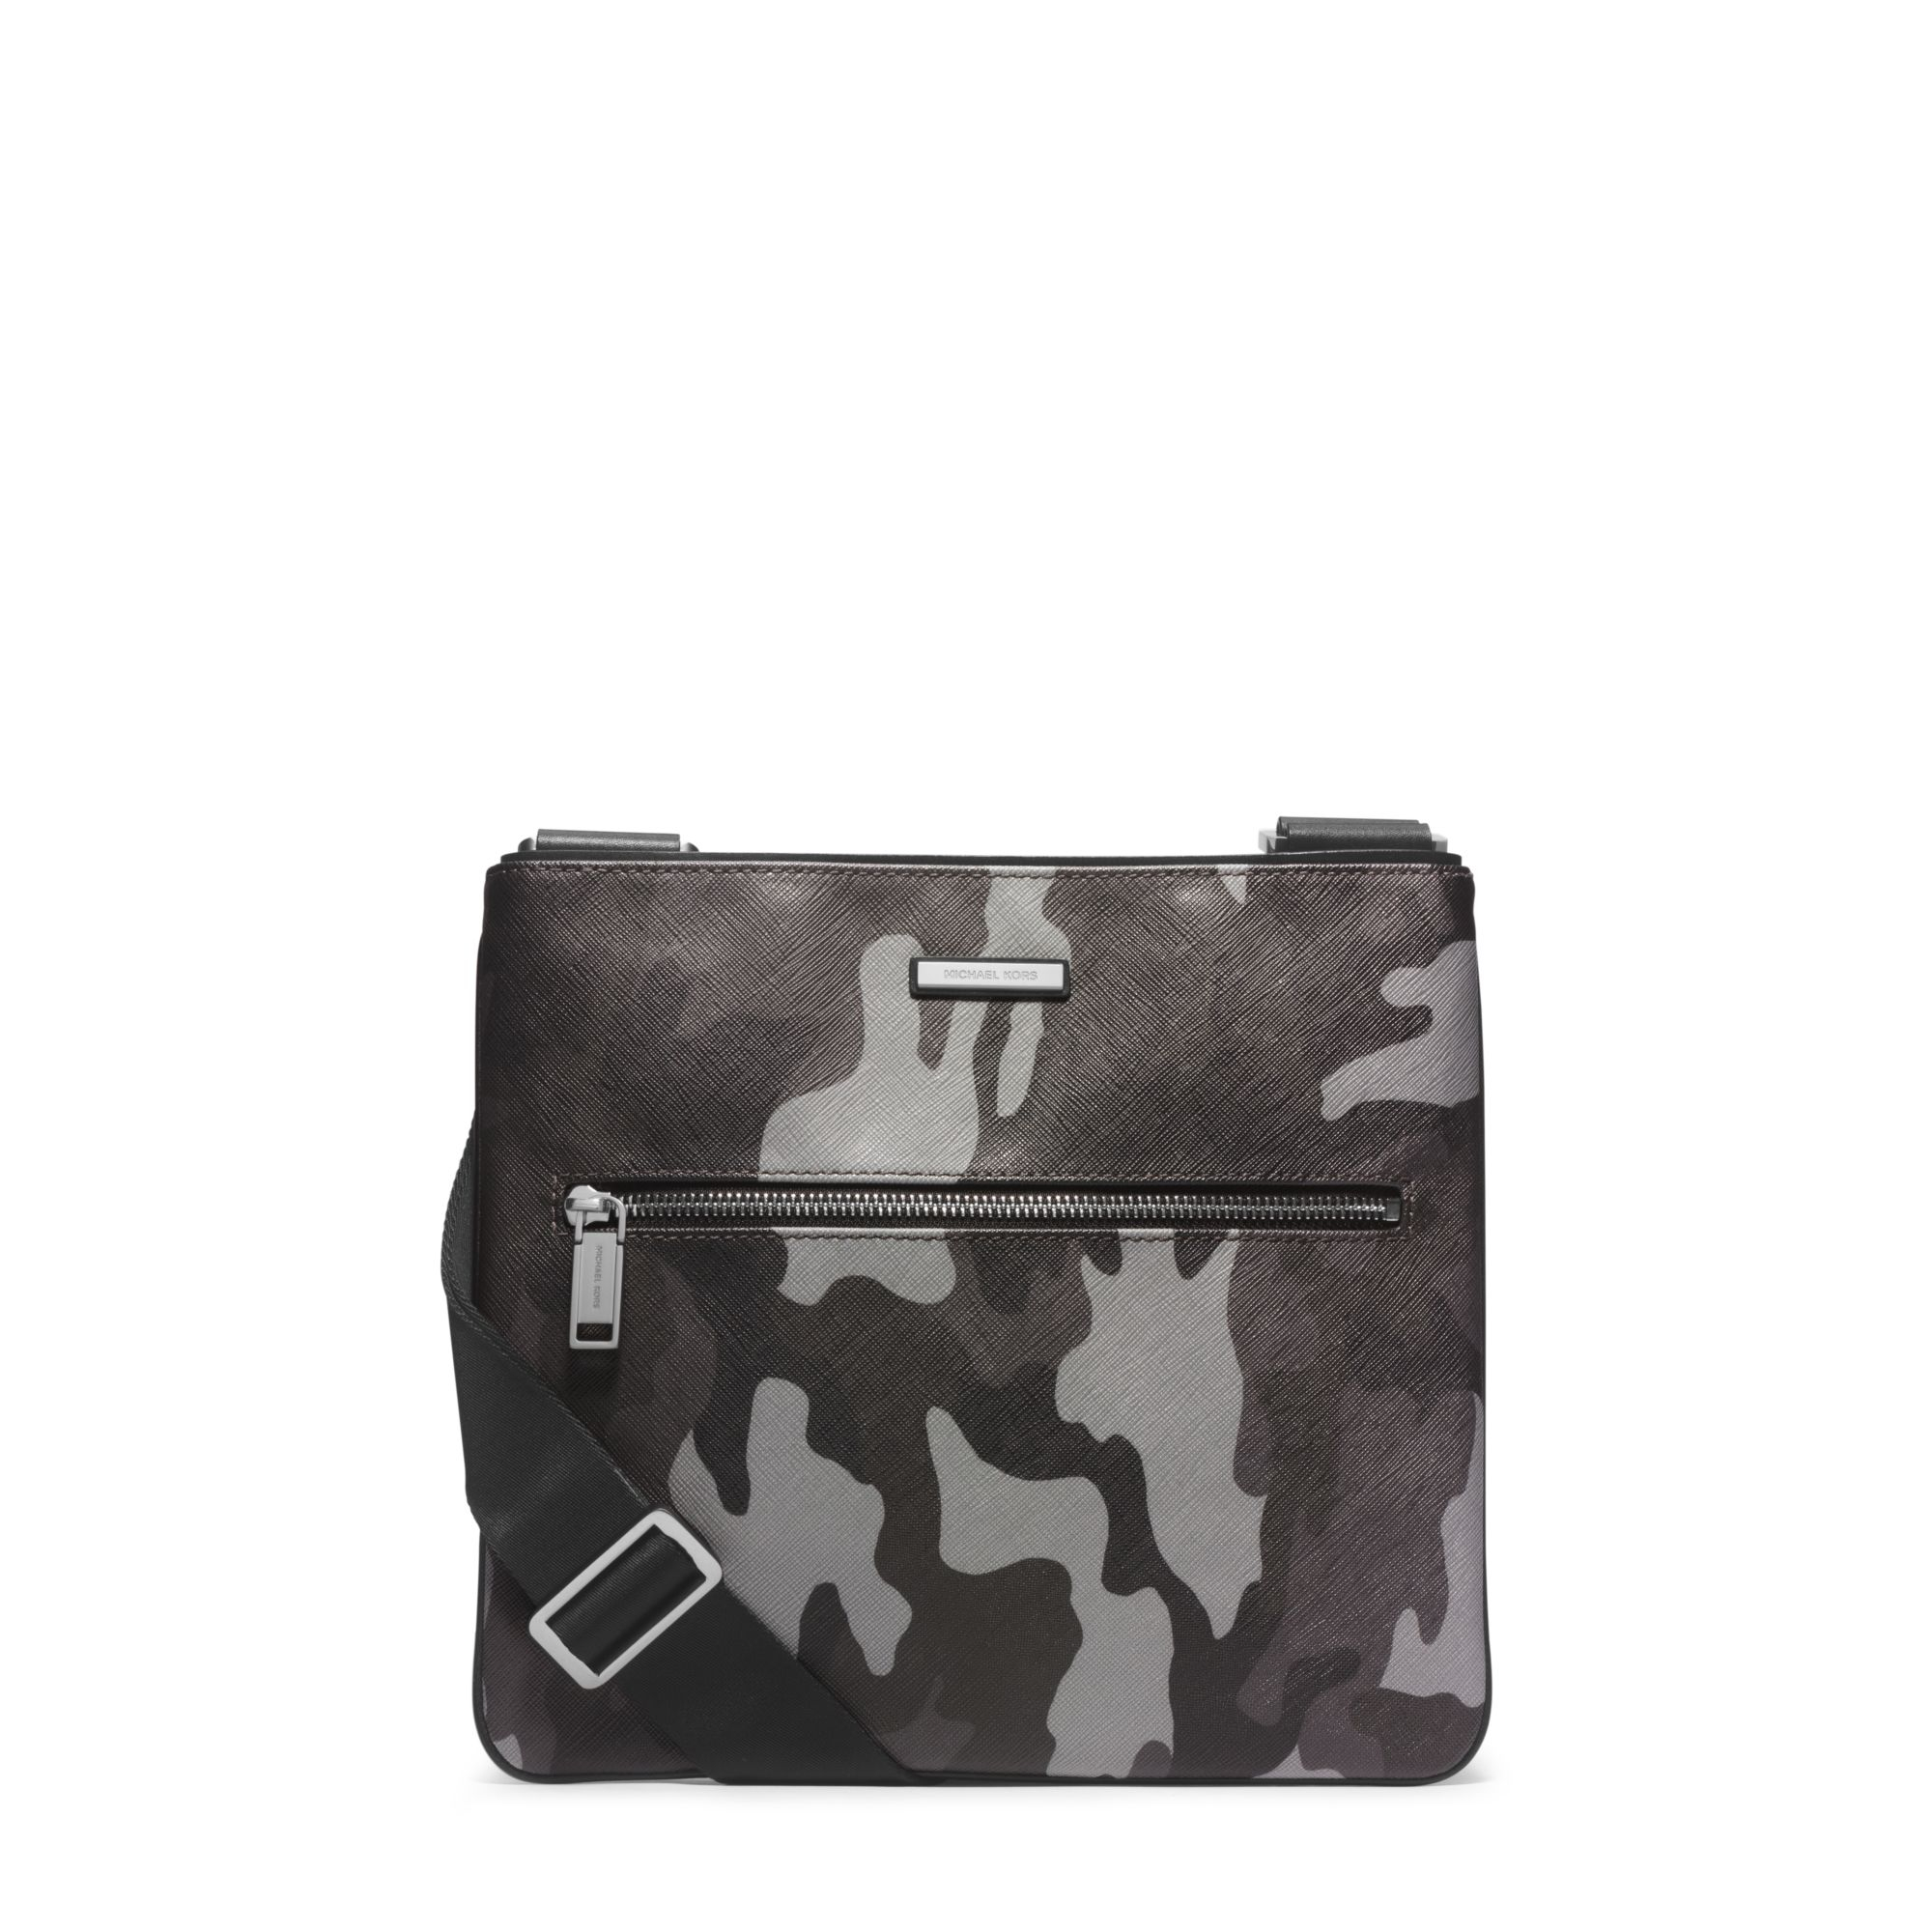 47ea1a0966a8 Lyst - Michael Kors Jet Set Men s Camouflage Small Crossbody in Gray ...